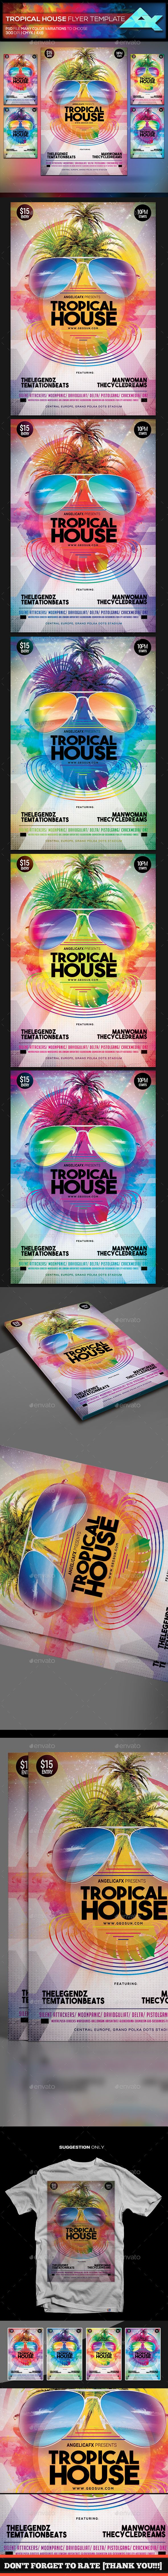 Tropical House Flyer Template — Photoshop PSD #dj #mixtape • Download ➝ https://graphicriver.net/item/tropical-house-flyer-template/20217569?ref=pxcr